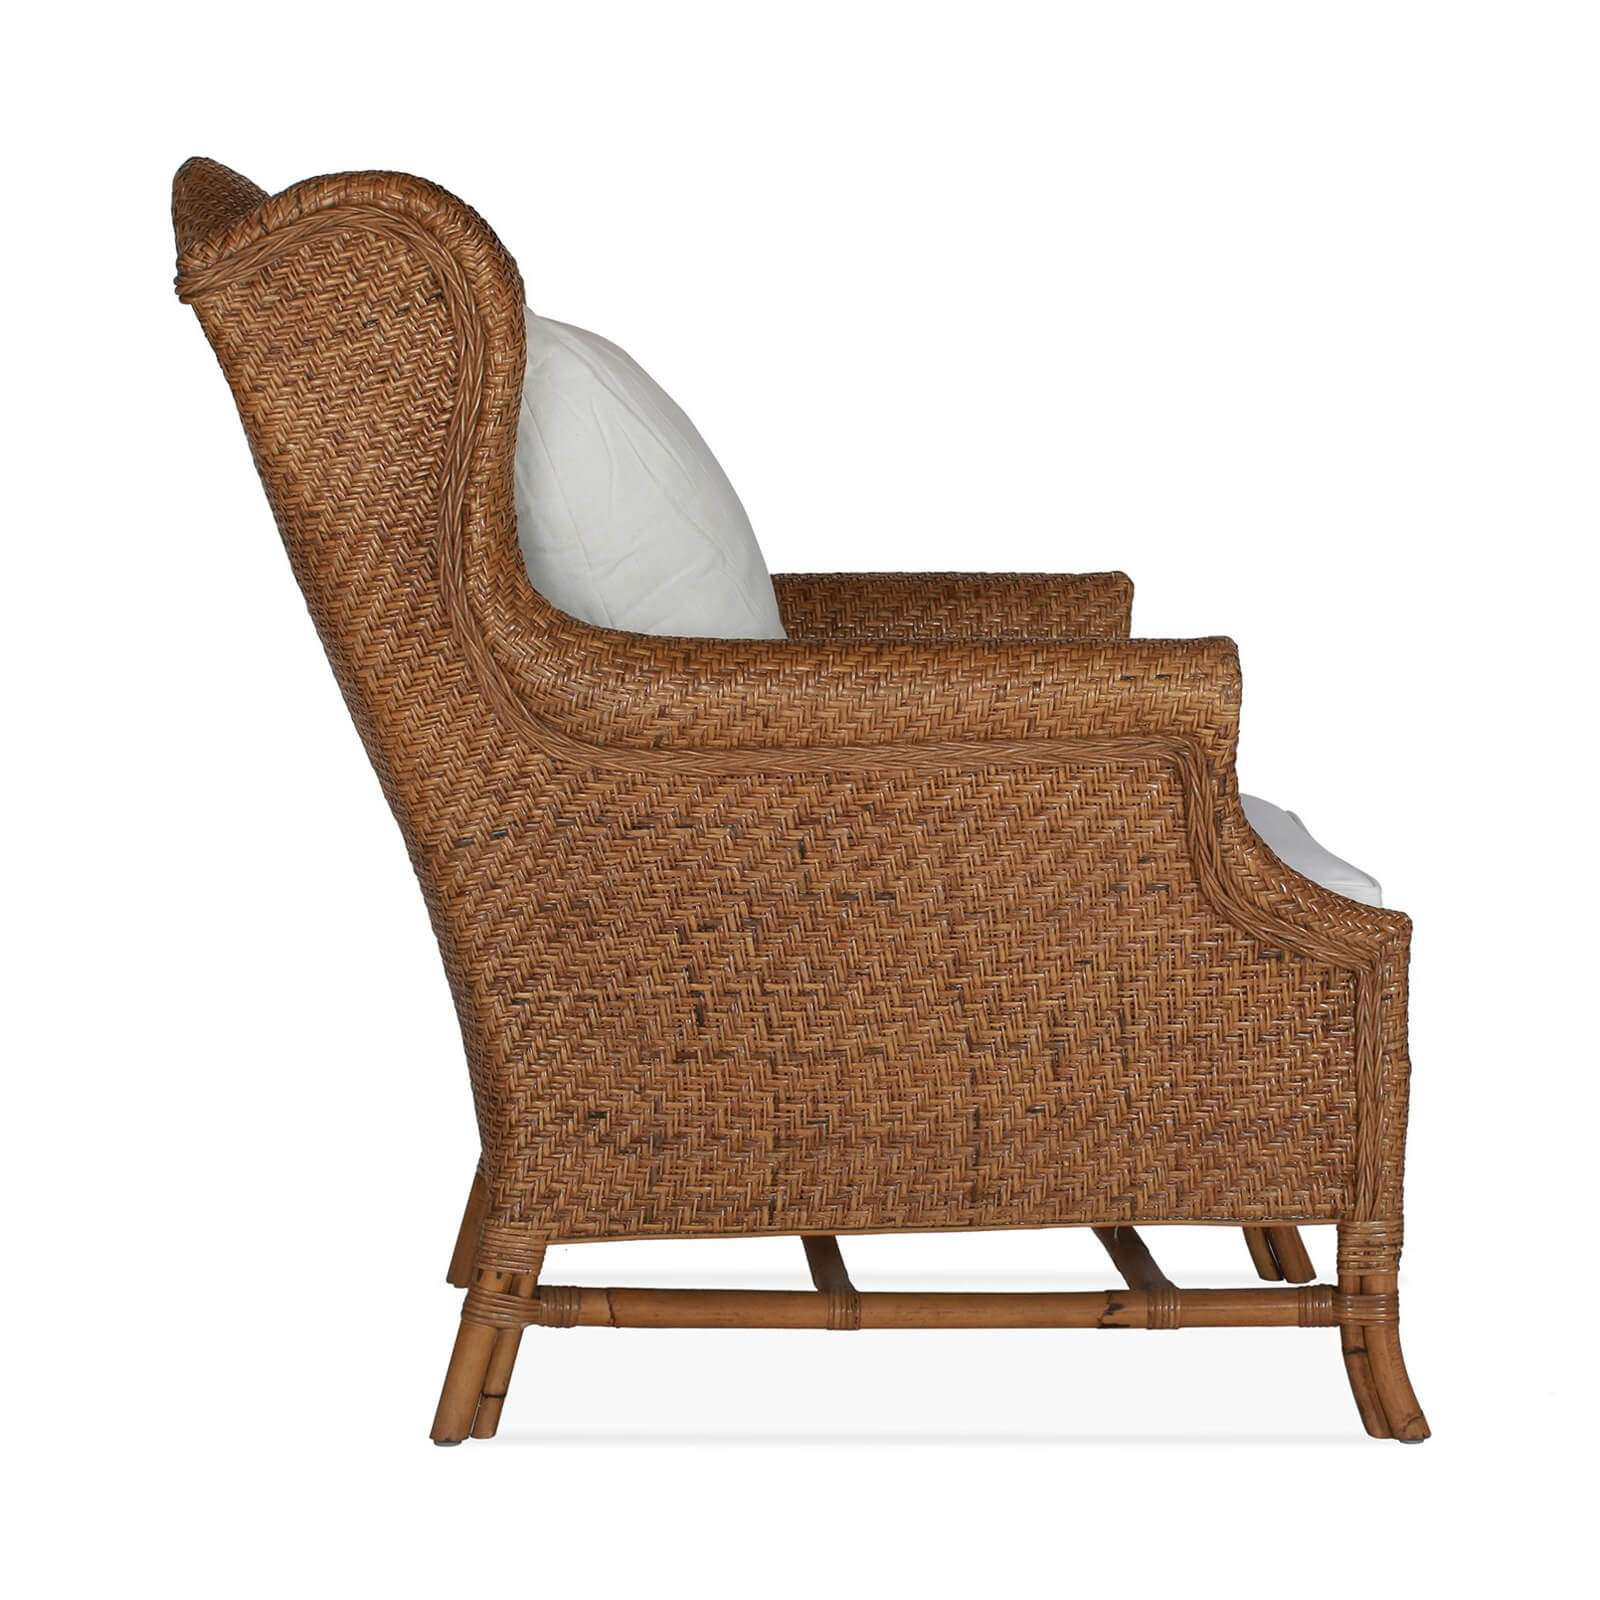 SAVANNA WING CHAIR 33 - STUART MEMBERY HOME COLLECTION